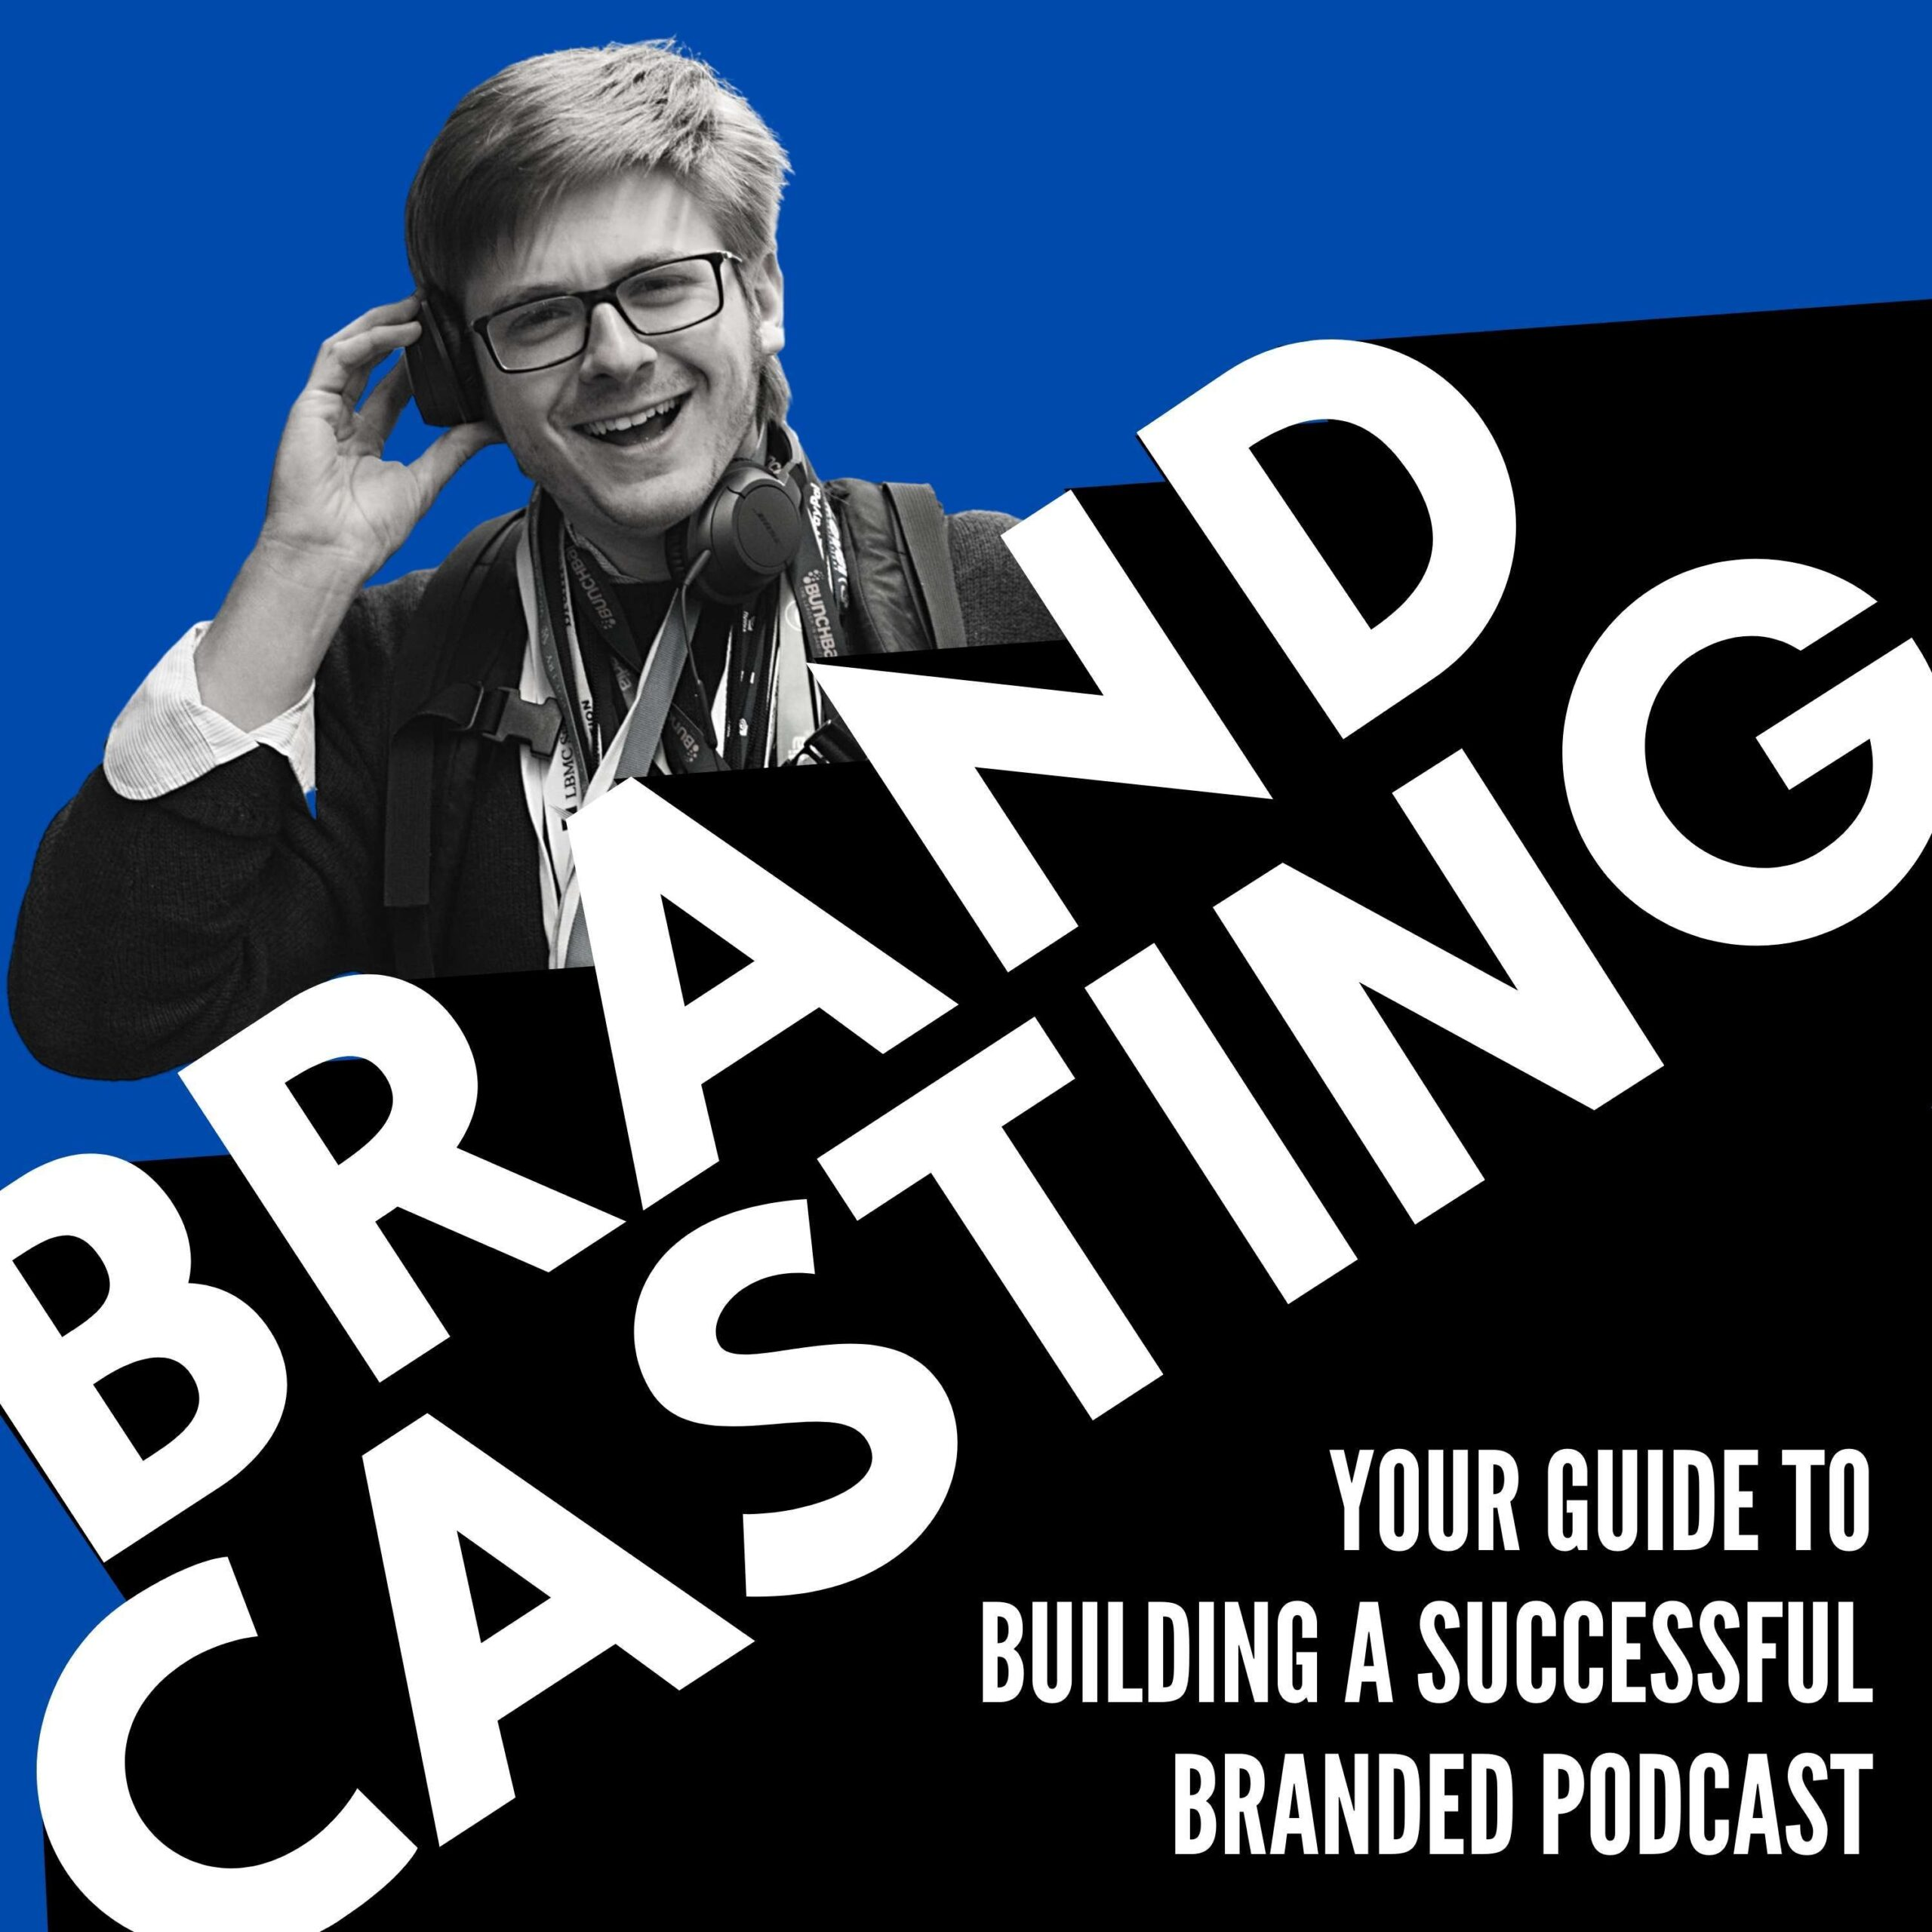 Brandcasting - Your Guide to Building a Successful Branded Podcast